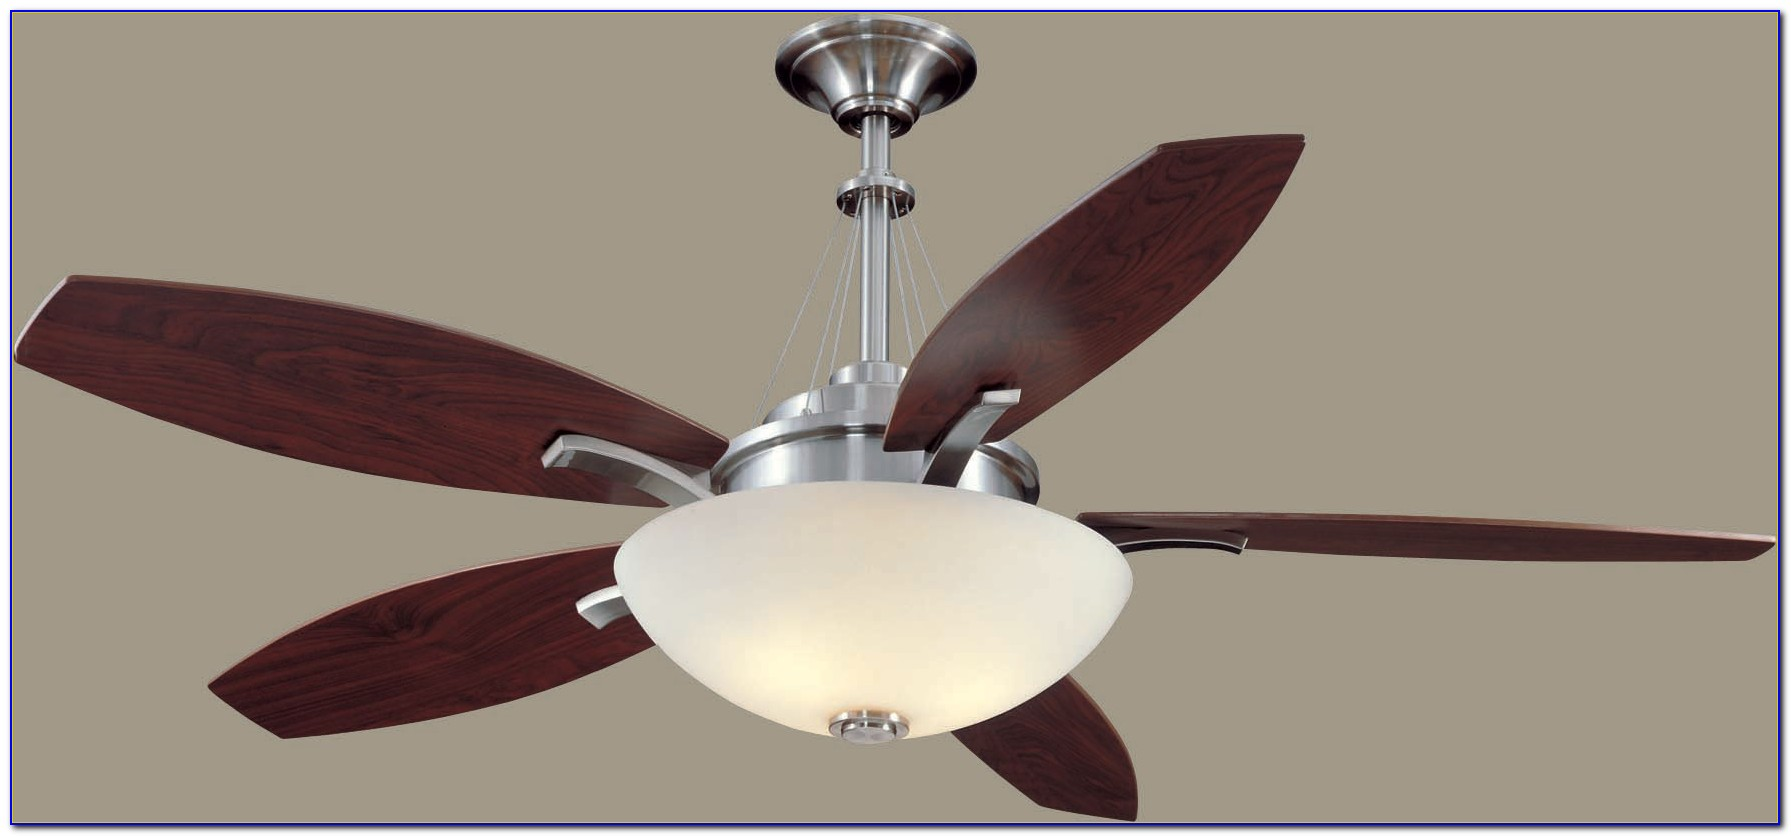 Retro Brushed Nickel Ceiling Fan Light Kit